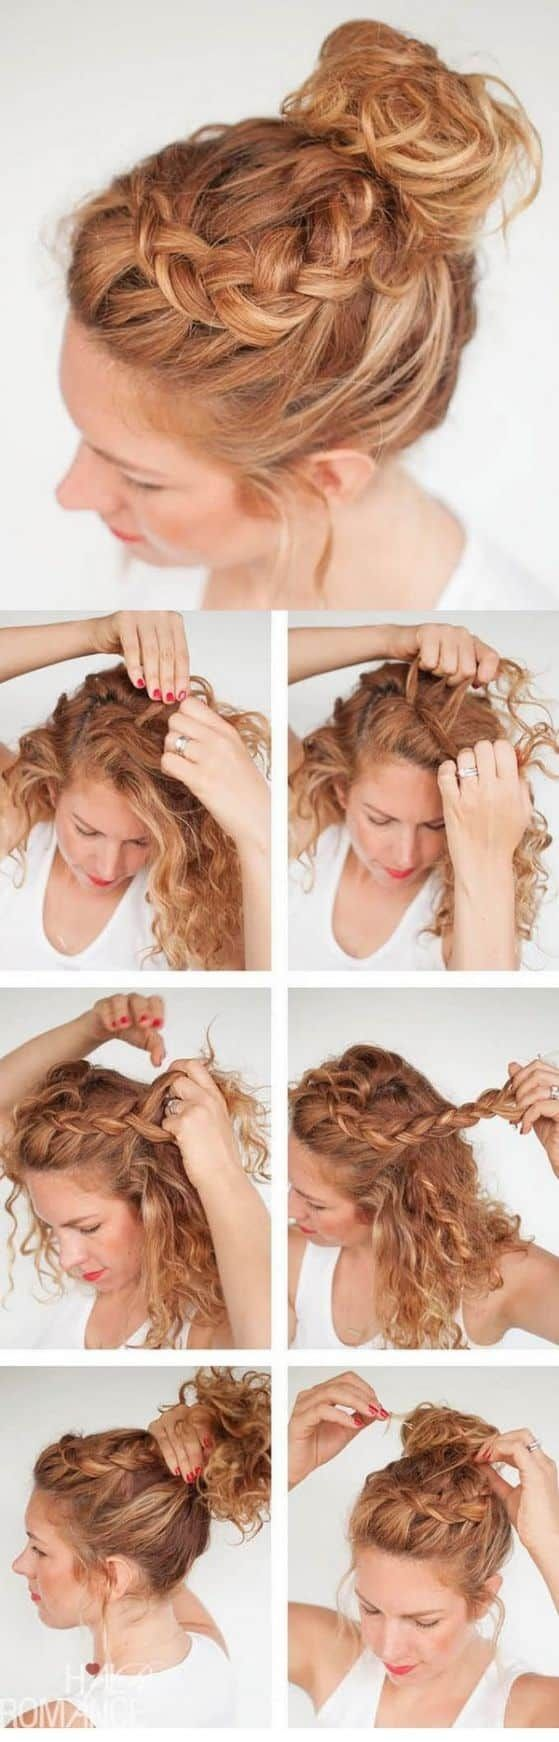 Hairstyles for long hair hairstyle pinterest easy